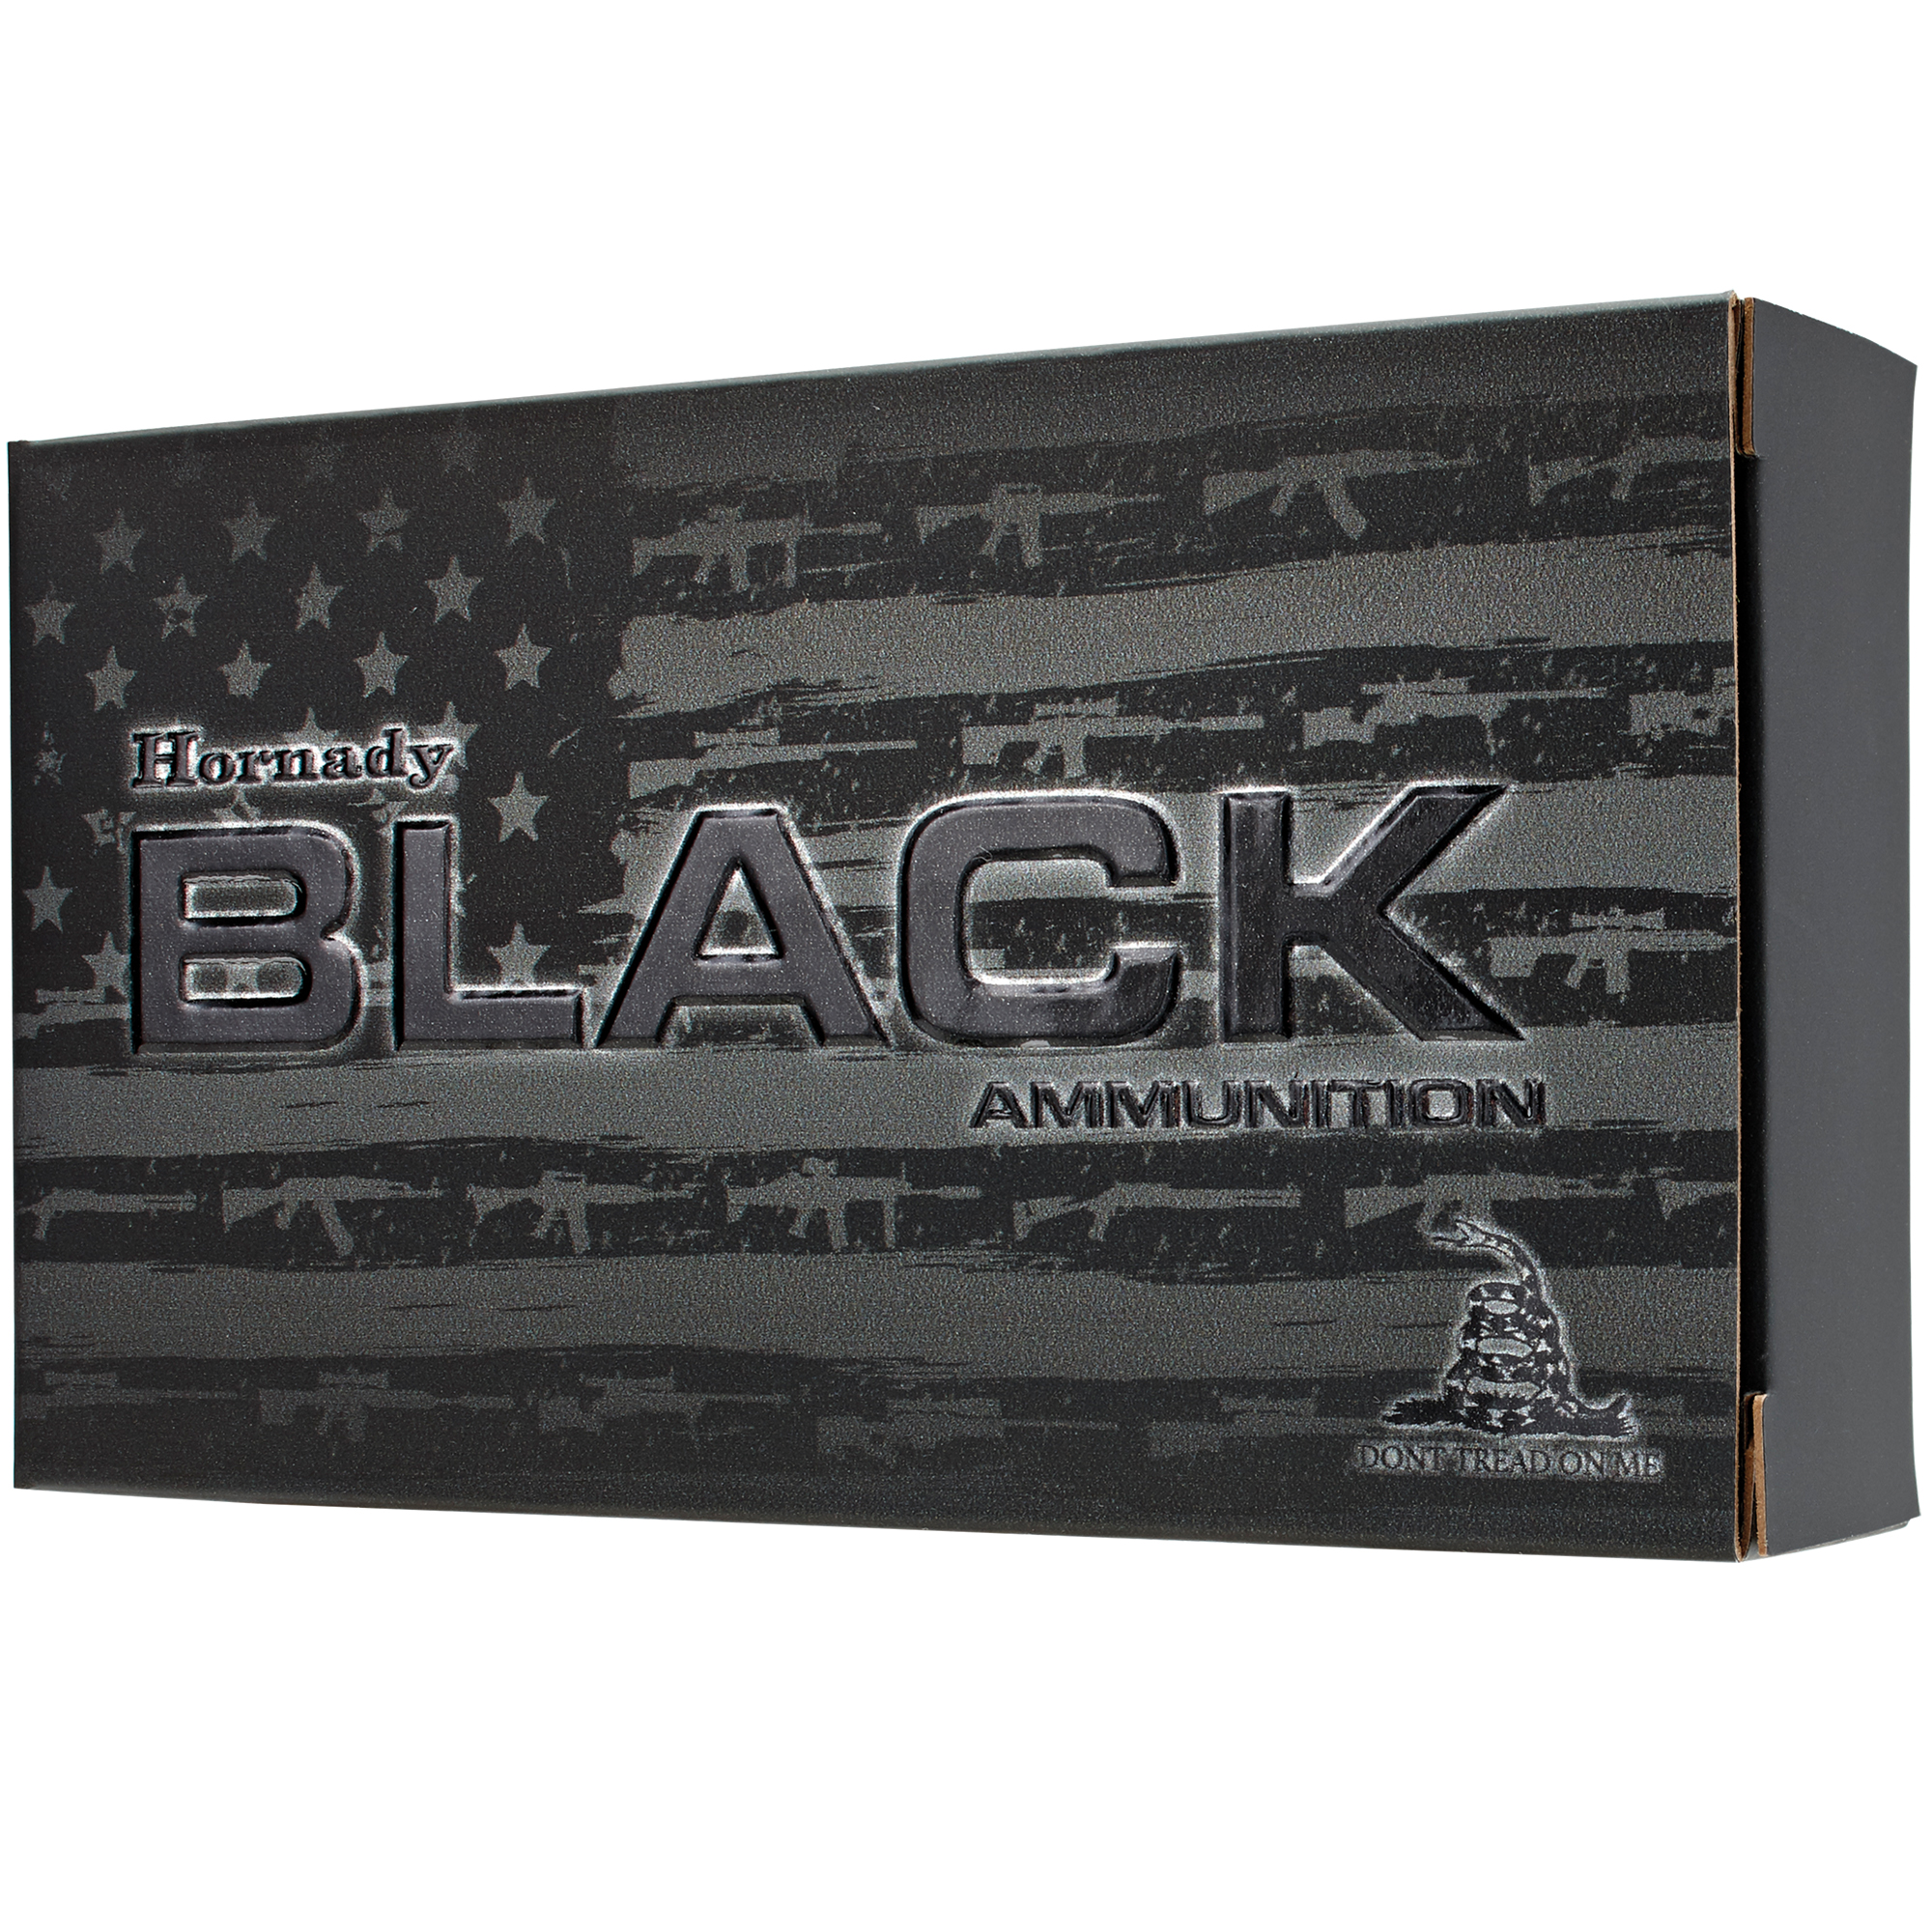 Hornady Black Rifle Ammunition, A-Max, .300 AAC Blackout